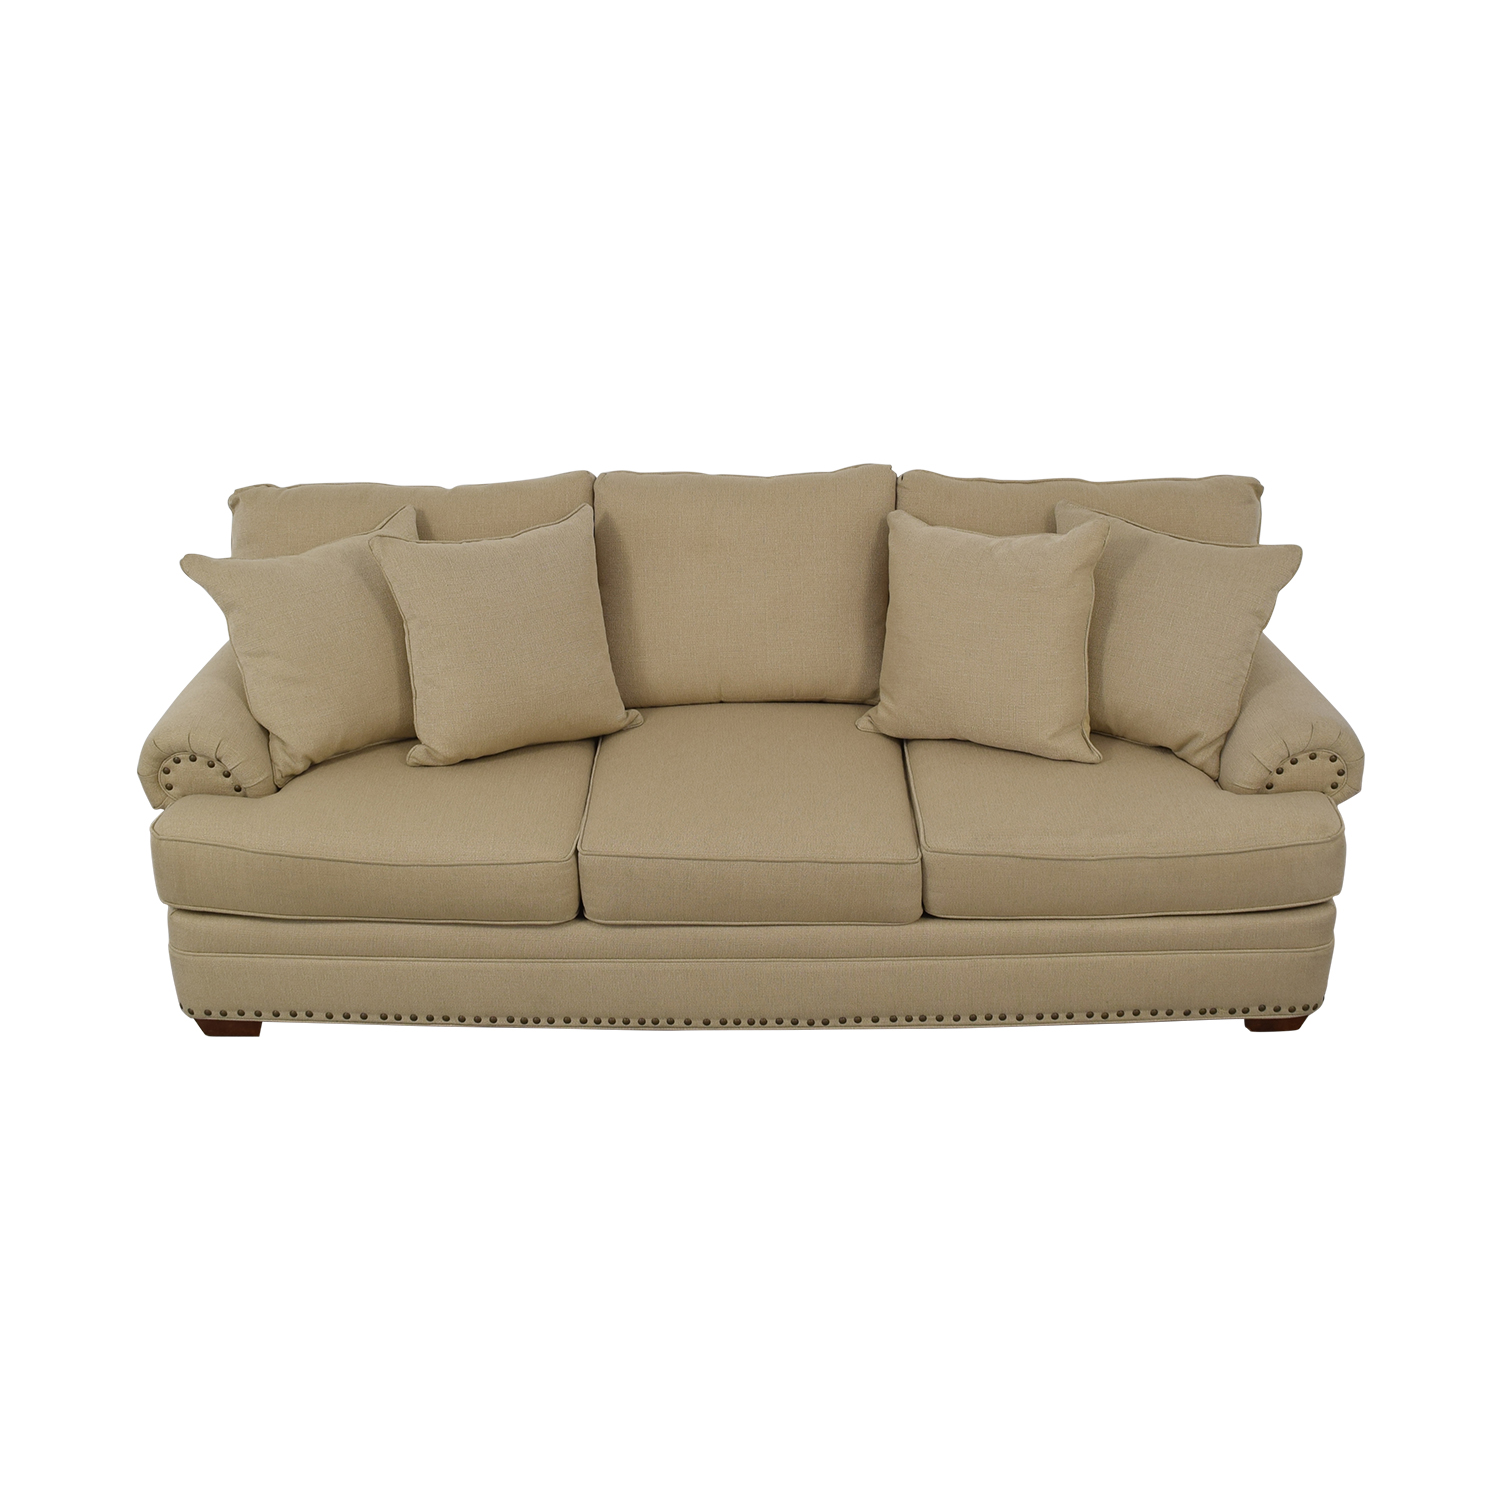 Havertys Havertys Three Cushion Fabric Roll Arm Sofa for sale